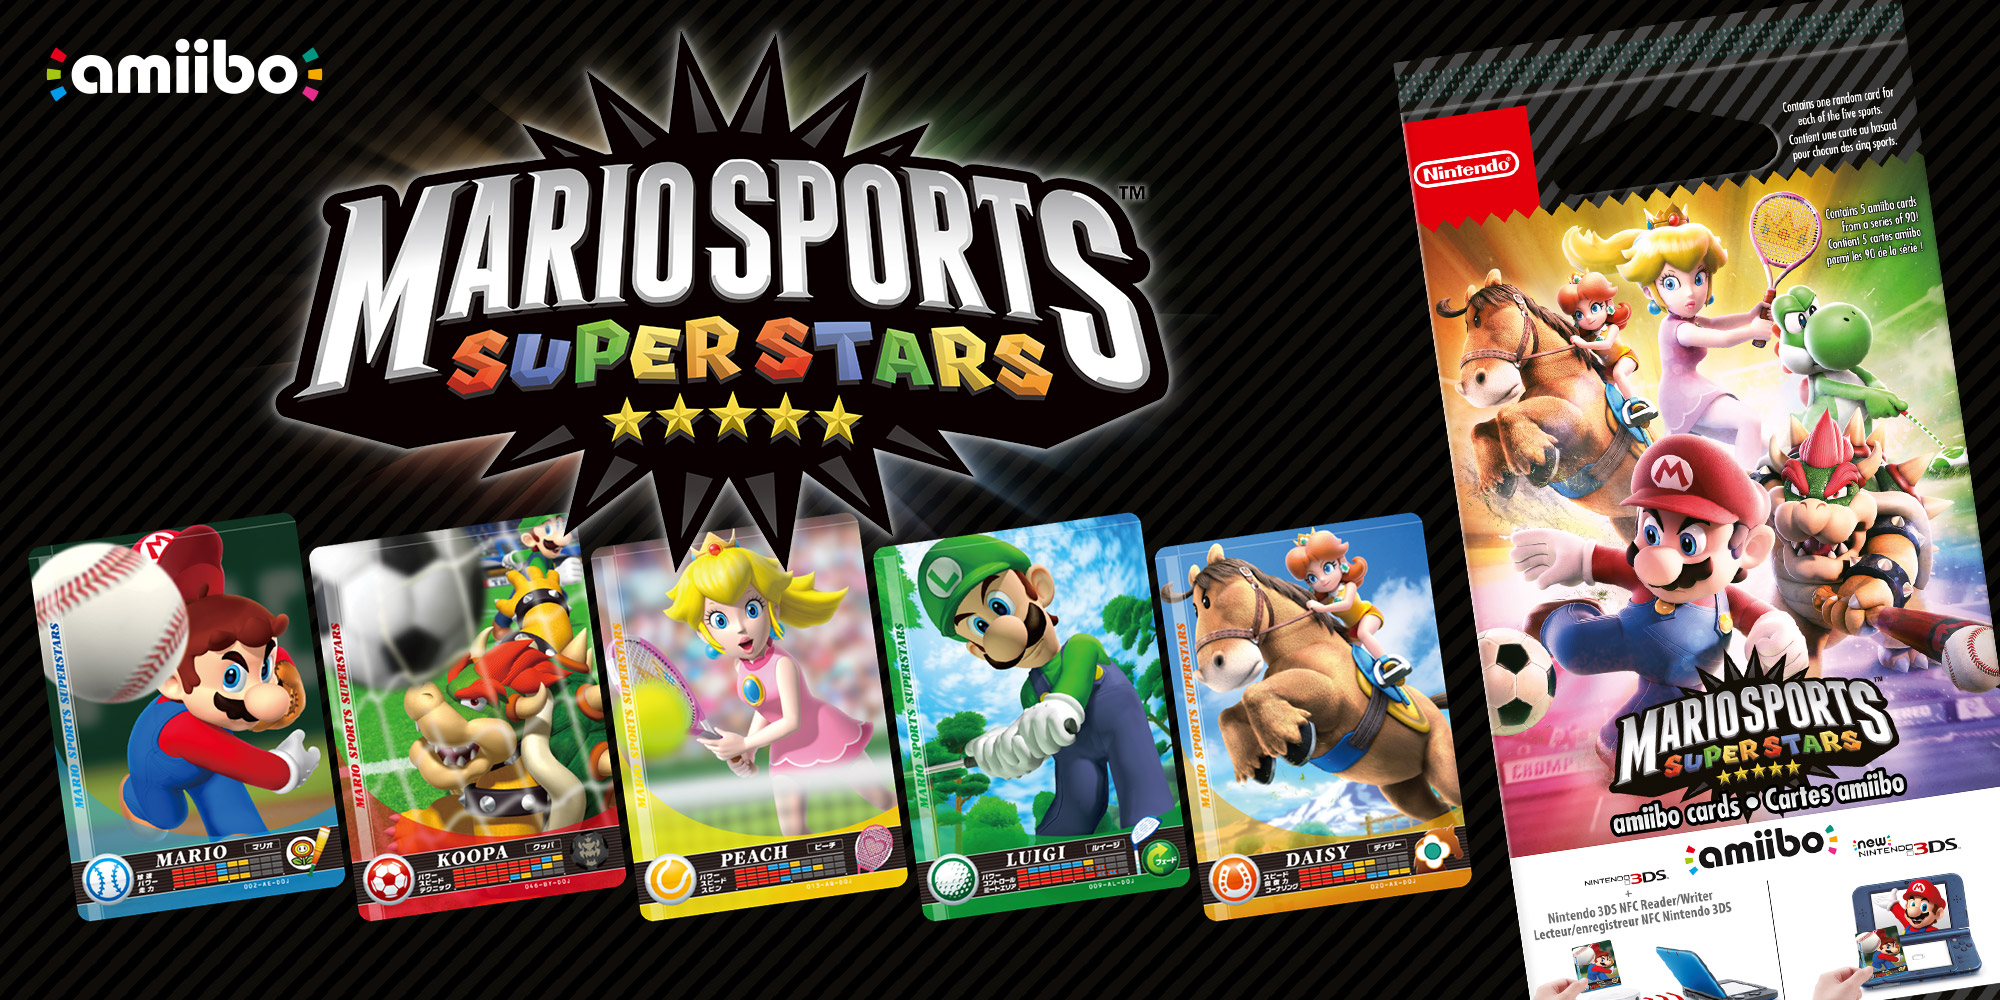 Cartes amiibo Mario Sports Superstars | Mario Sports Superstars | Nintendo